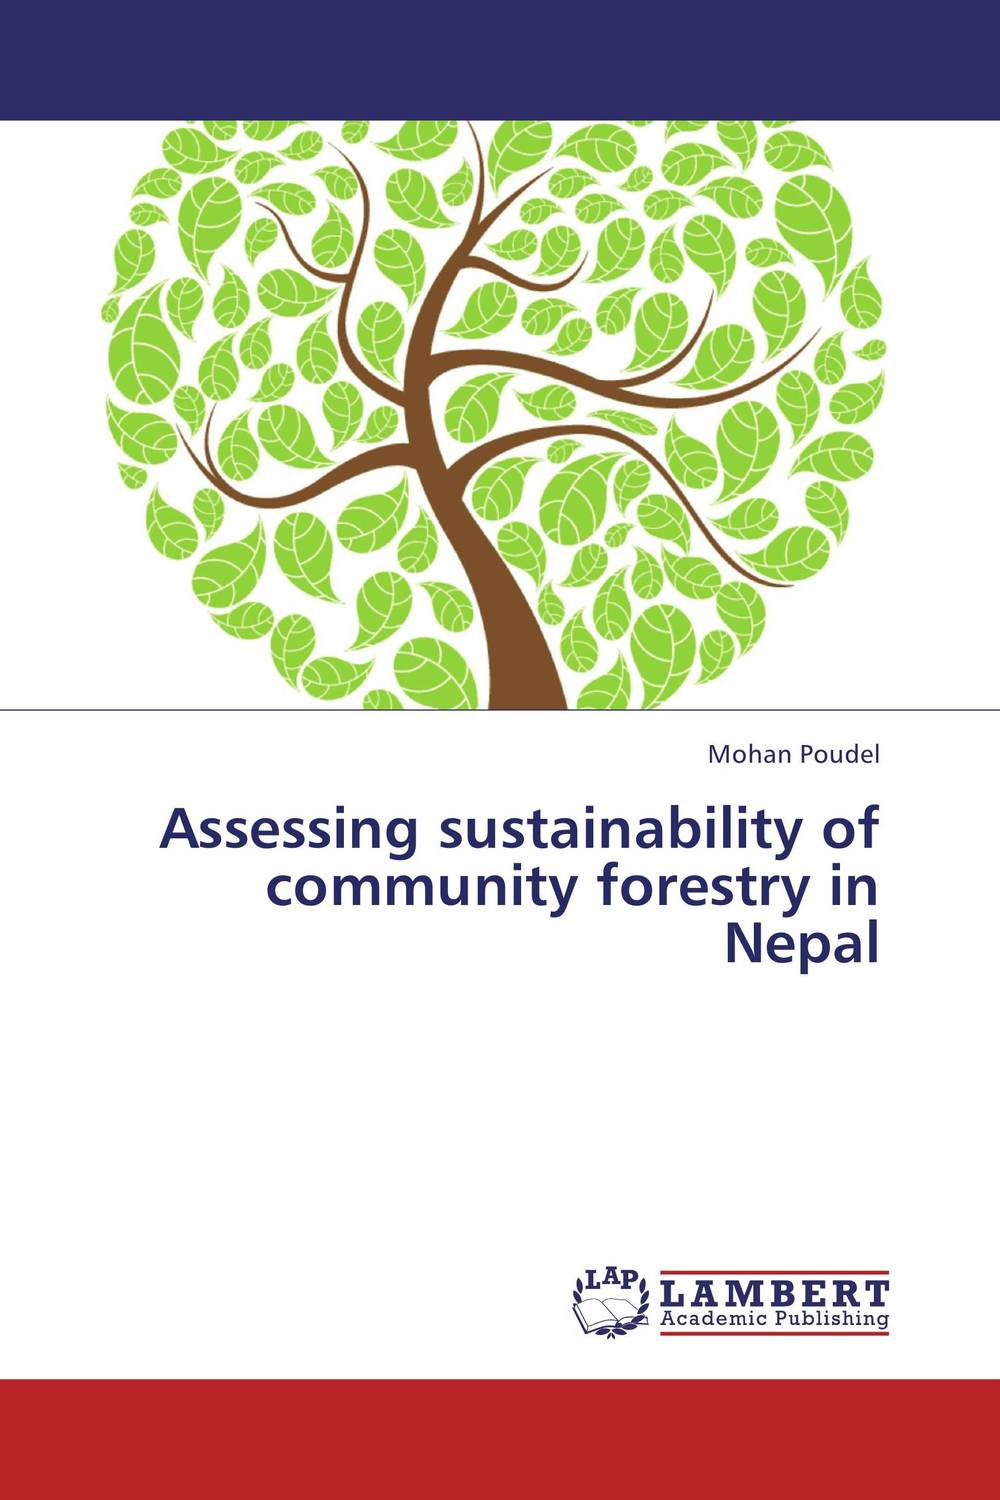 Assessing sustainability of community forestry  in Nepal role of community forestry in rural development of nepal